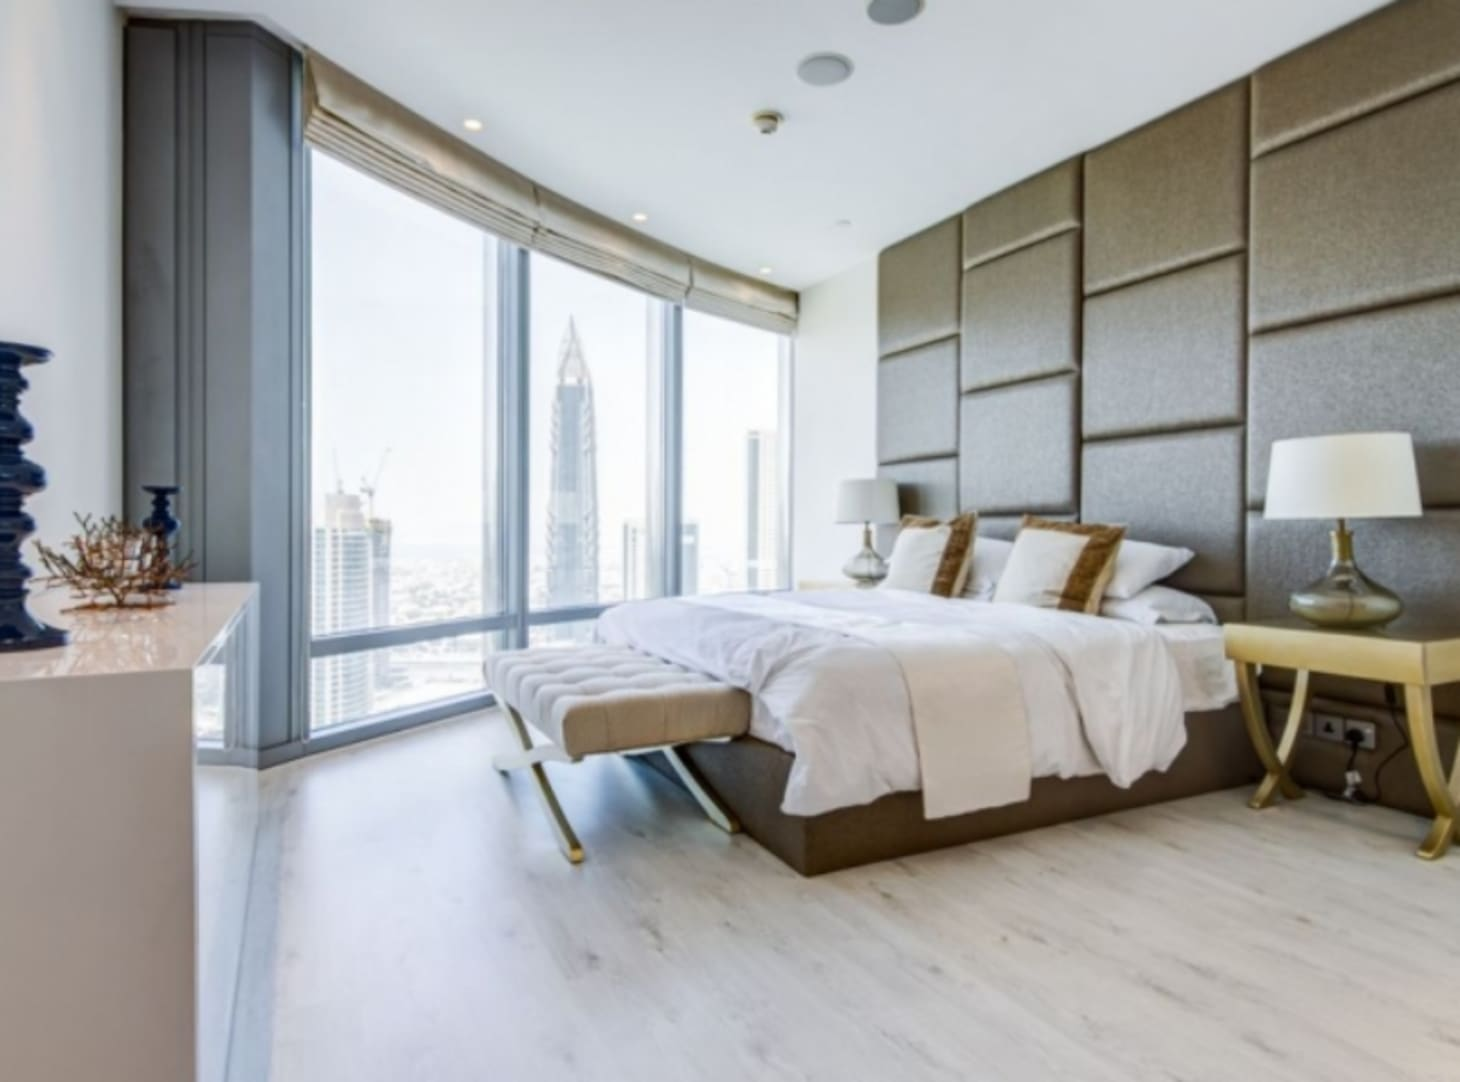 What it Costs to Live in Burj Khalifa: World's Tallest